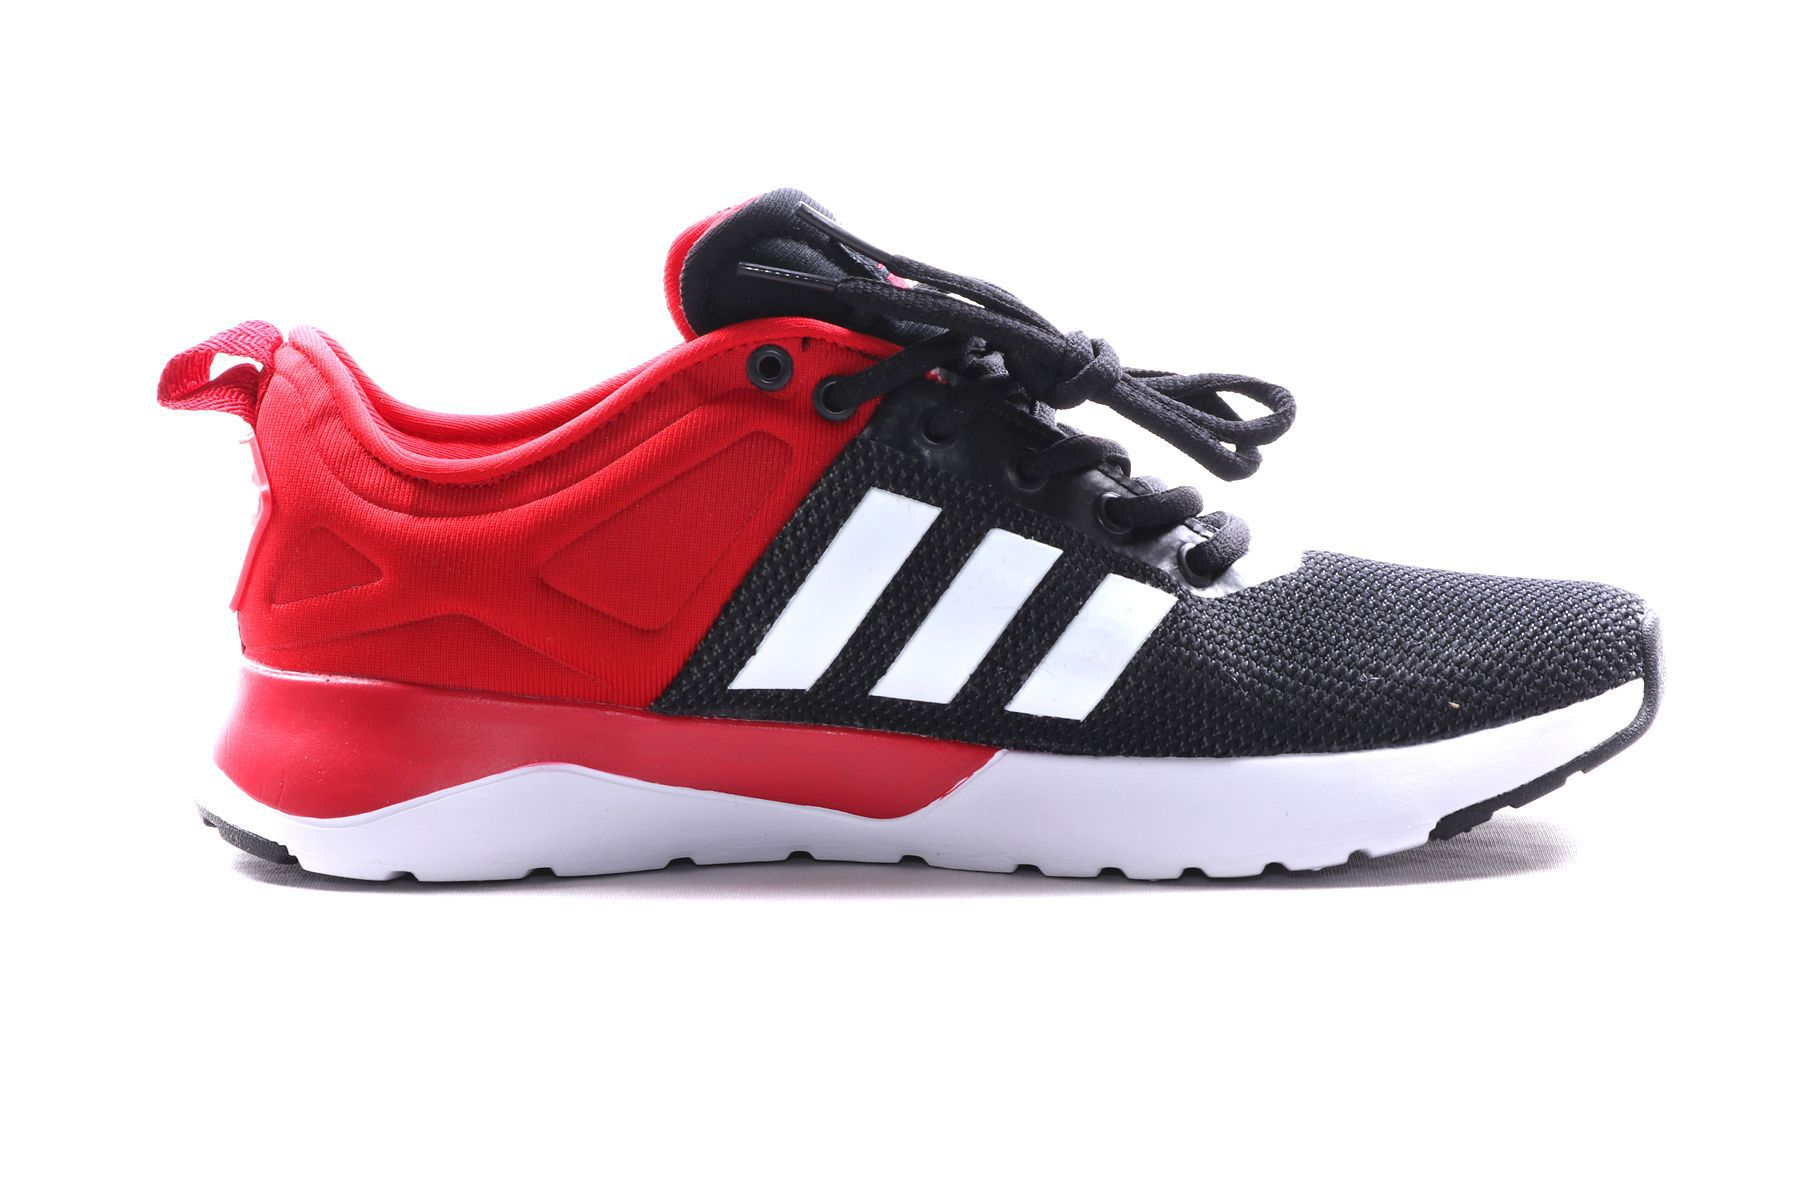 50ff5e245ed Adidas CLOUDFOAM Red Running Shoes - Buy Adidas CLOUDFOAM Red Running Shoes  Online at Best Prices in India on Snapdeal